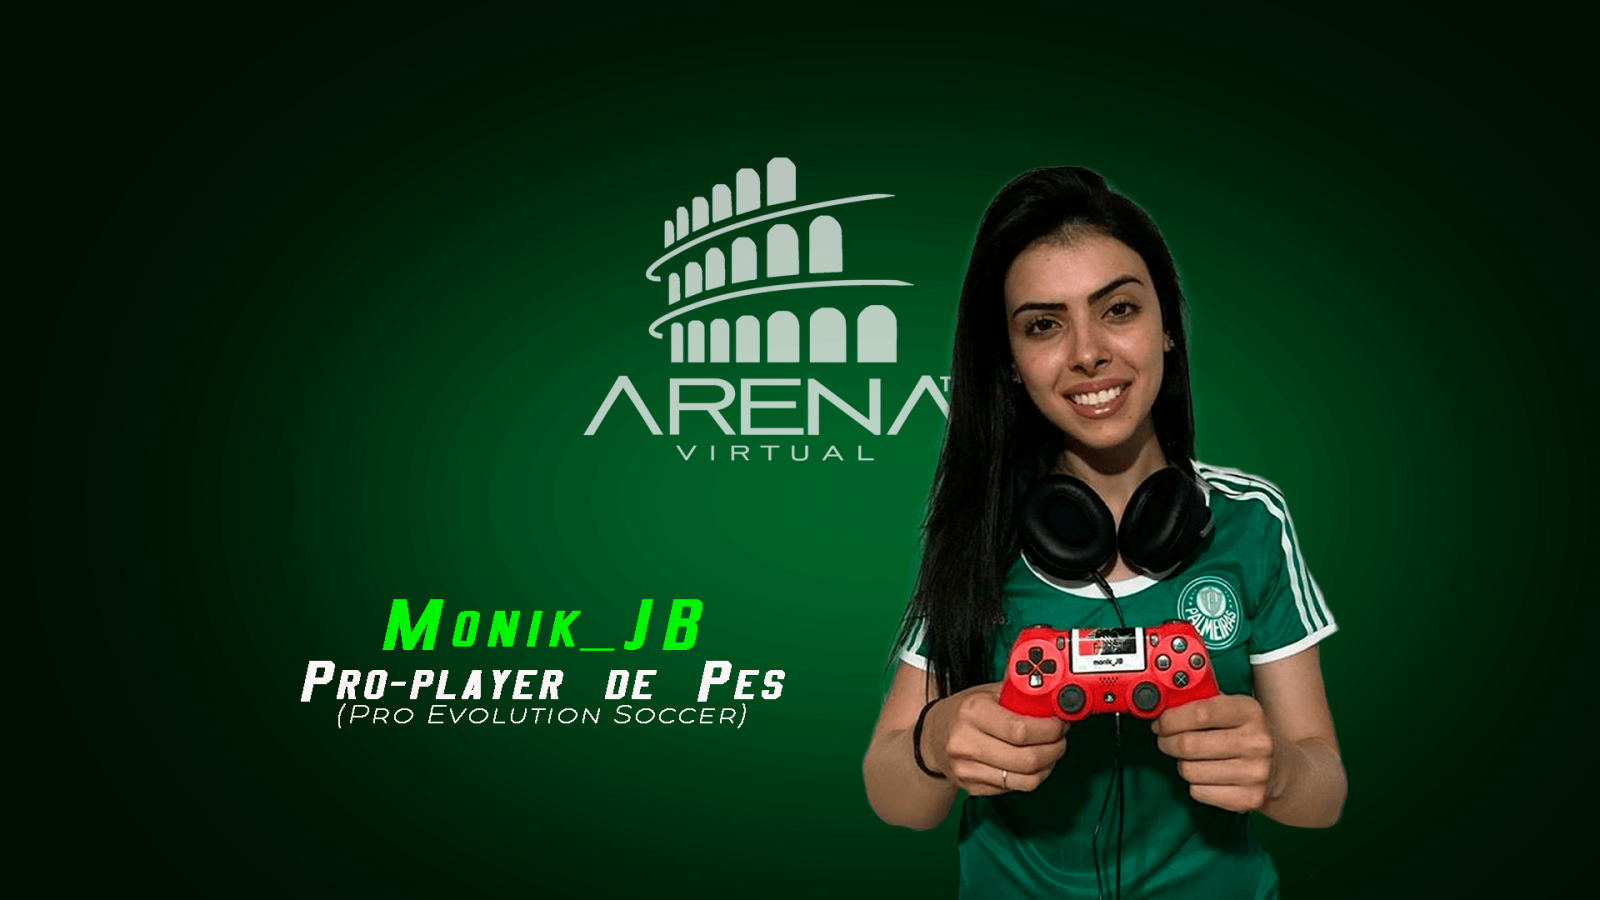 Pro Player Monik